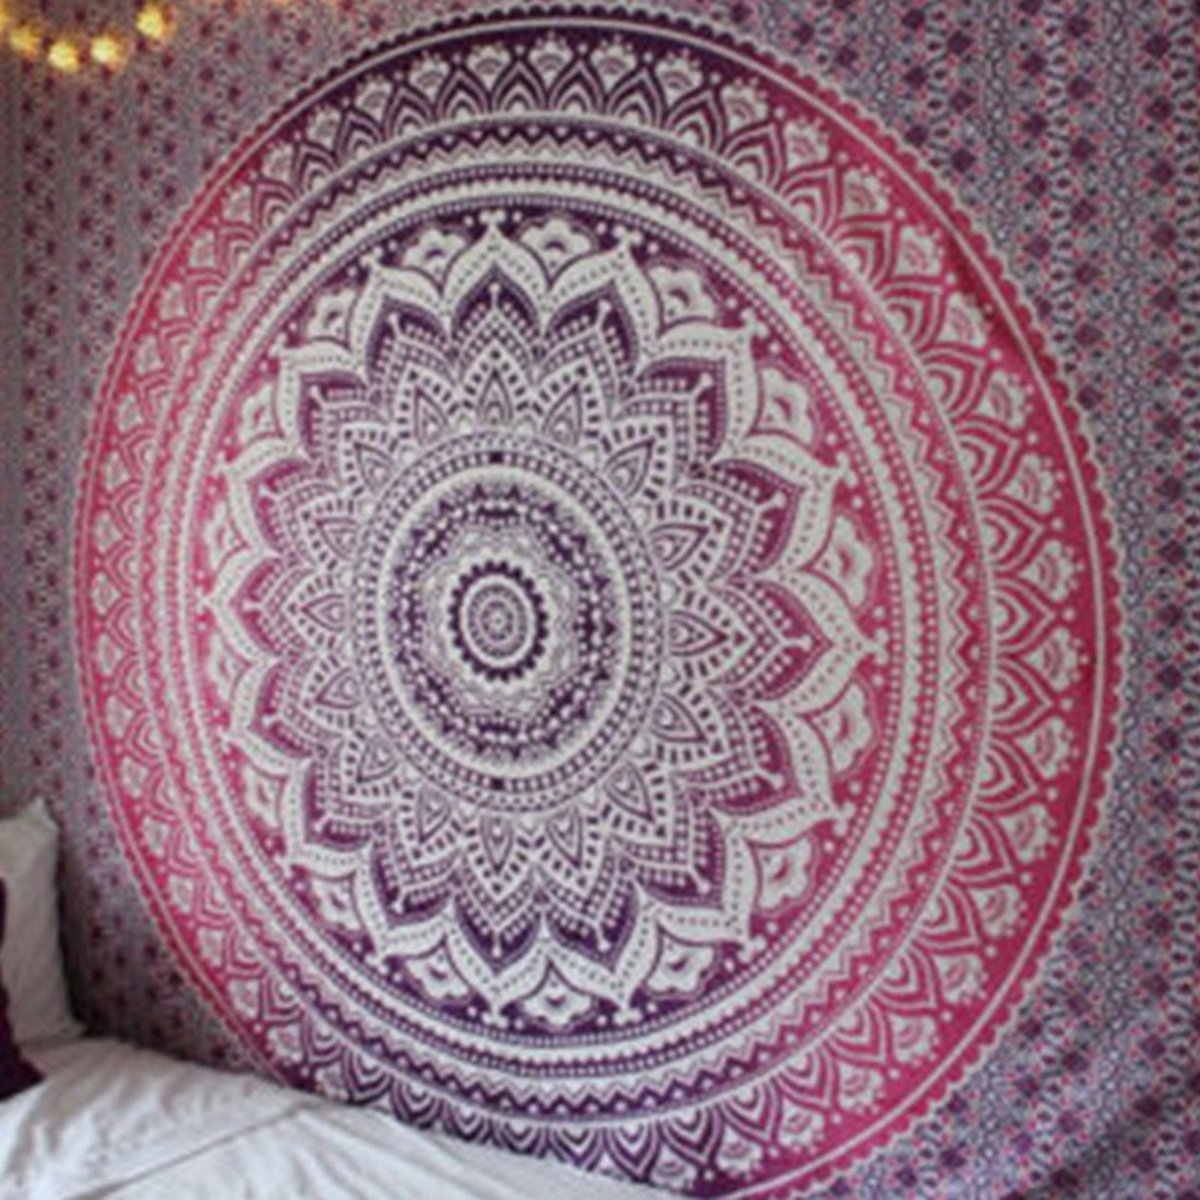 Hoomall Floral Indian Mandala Bohemian Tapestry Wall Hanging Beach Towel Shawl Scarf Screen Ourstory